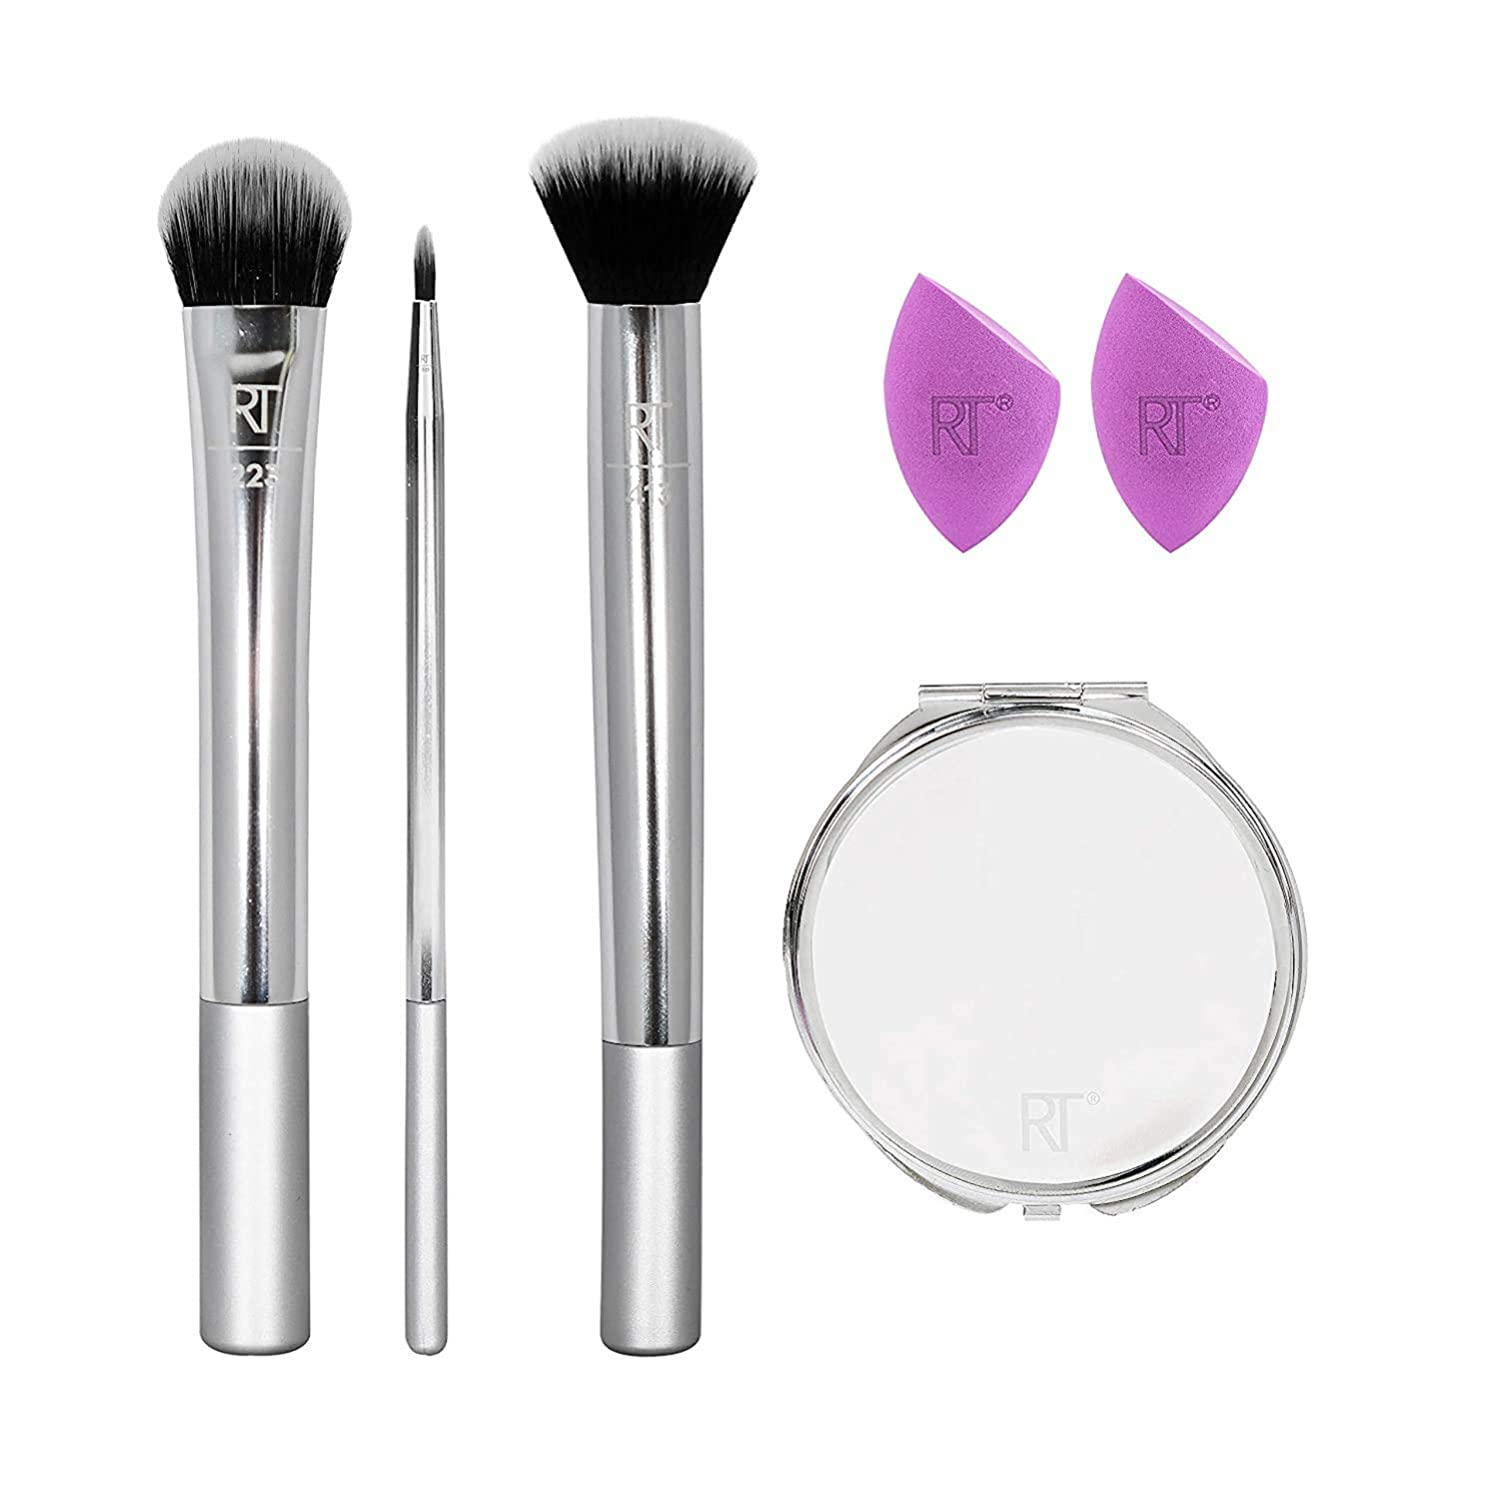 Real Techniques Poppin' Perfection Makeup Brush Set with Makeup Blender Beauty Sponges and Compact Makeup Mirror, Set of 6